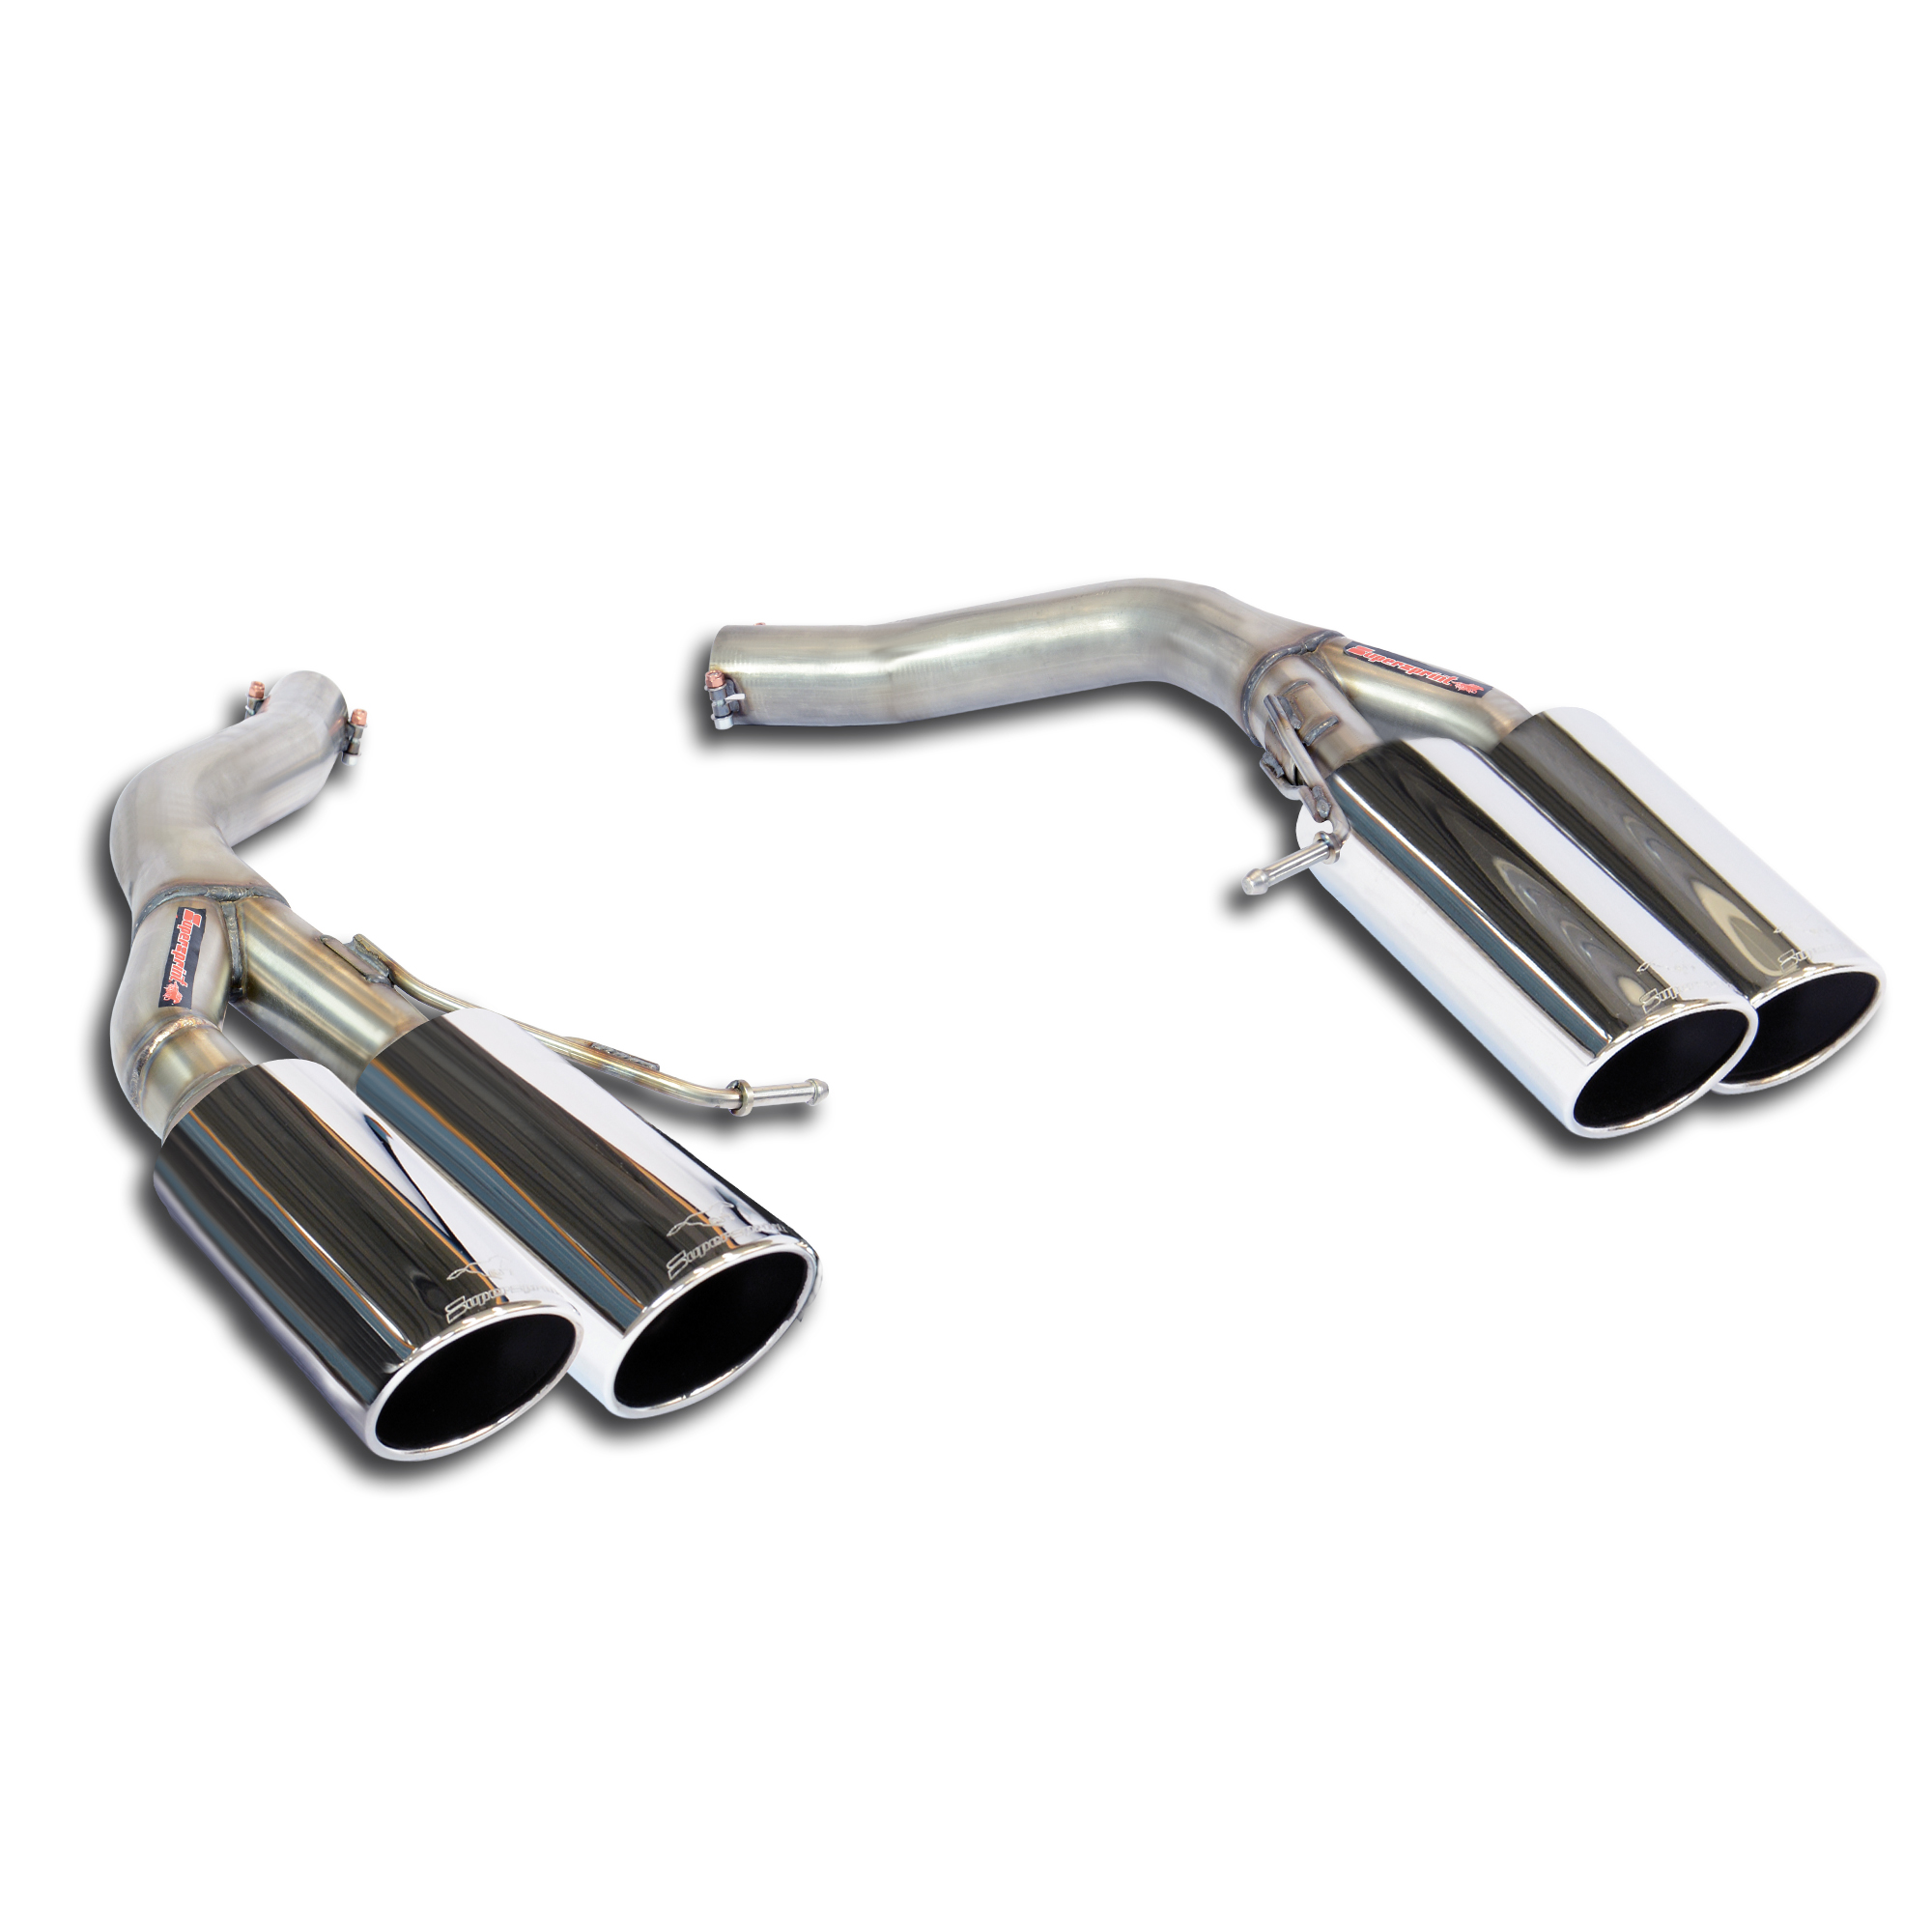 BMW - BMW F01 / F02 / F03 750i xDrive V8 '09 -> 2012 Rear pipes Right OO90 - Left OO90<br>(Muffler delete), performance exhaust systems